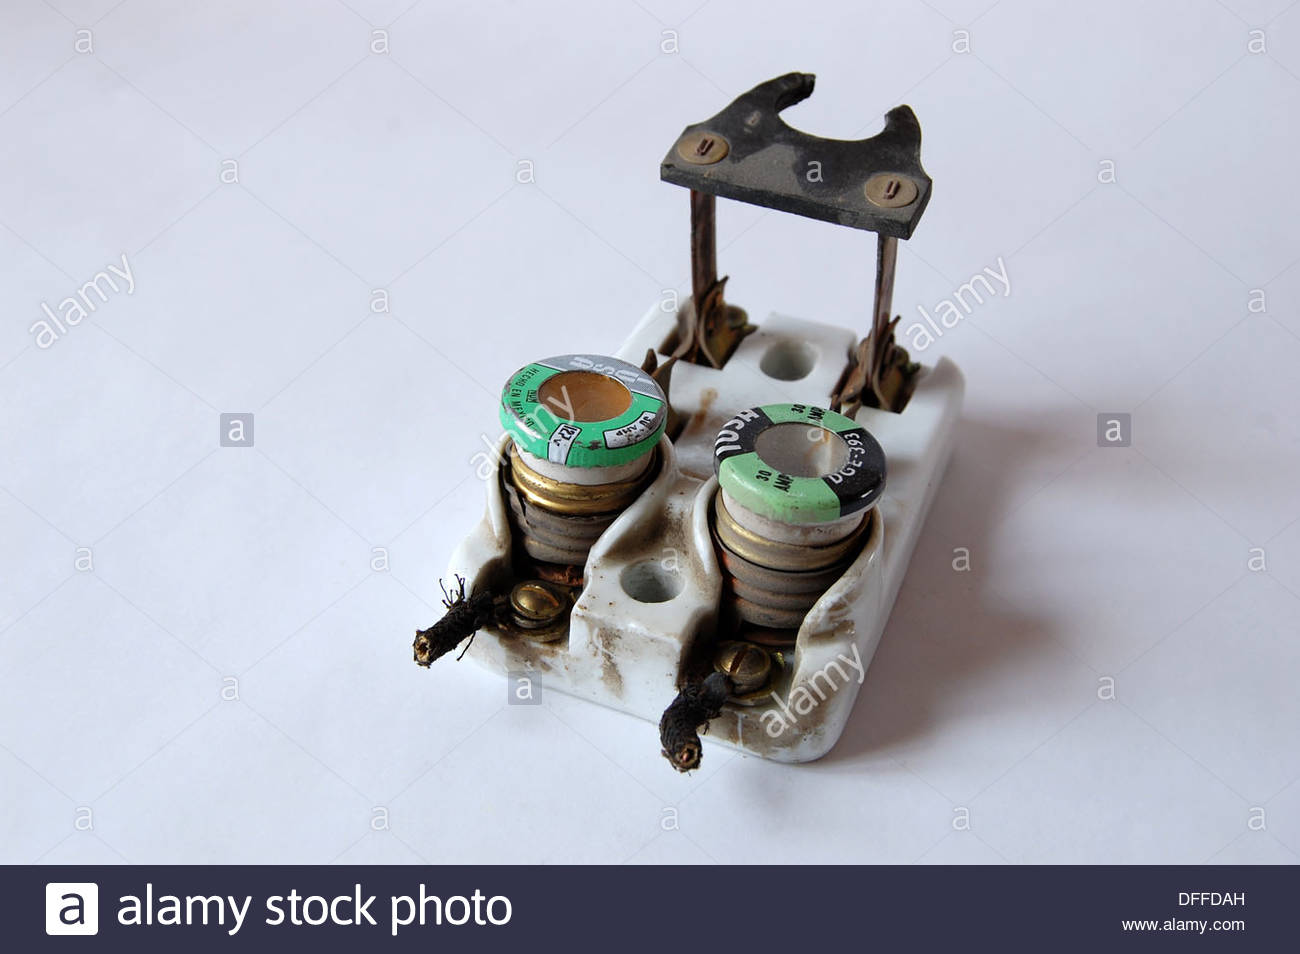 1940s Old Fuse Box Auto Electrical Wiring Diagram Ceramic Fuses 1950s Vintage Circuit Breaker